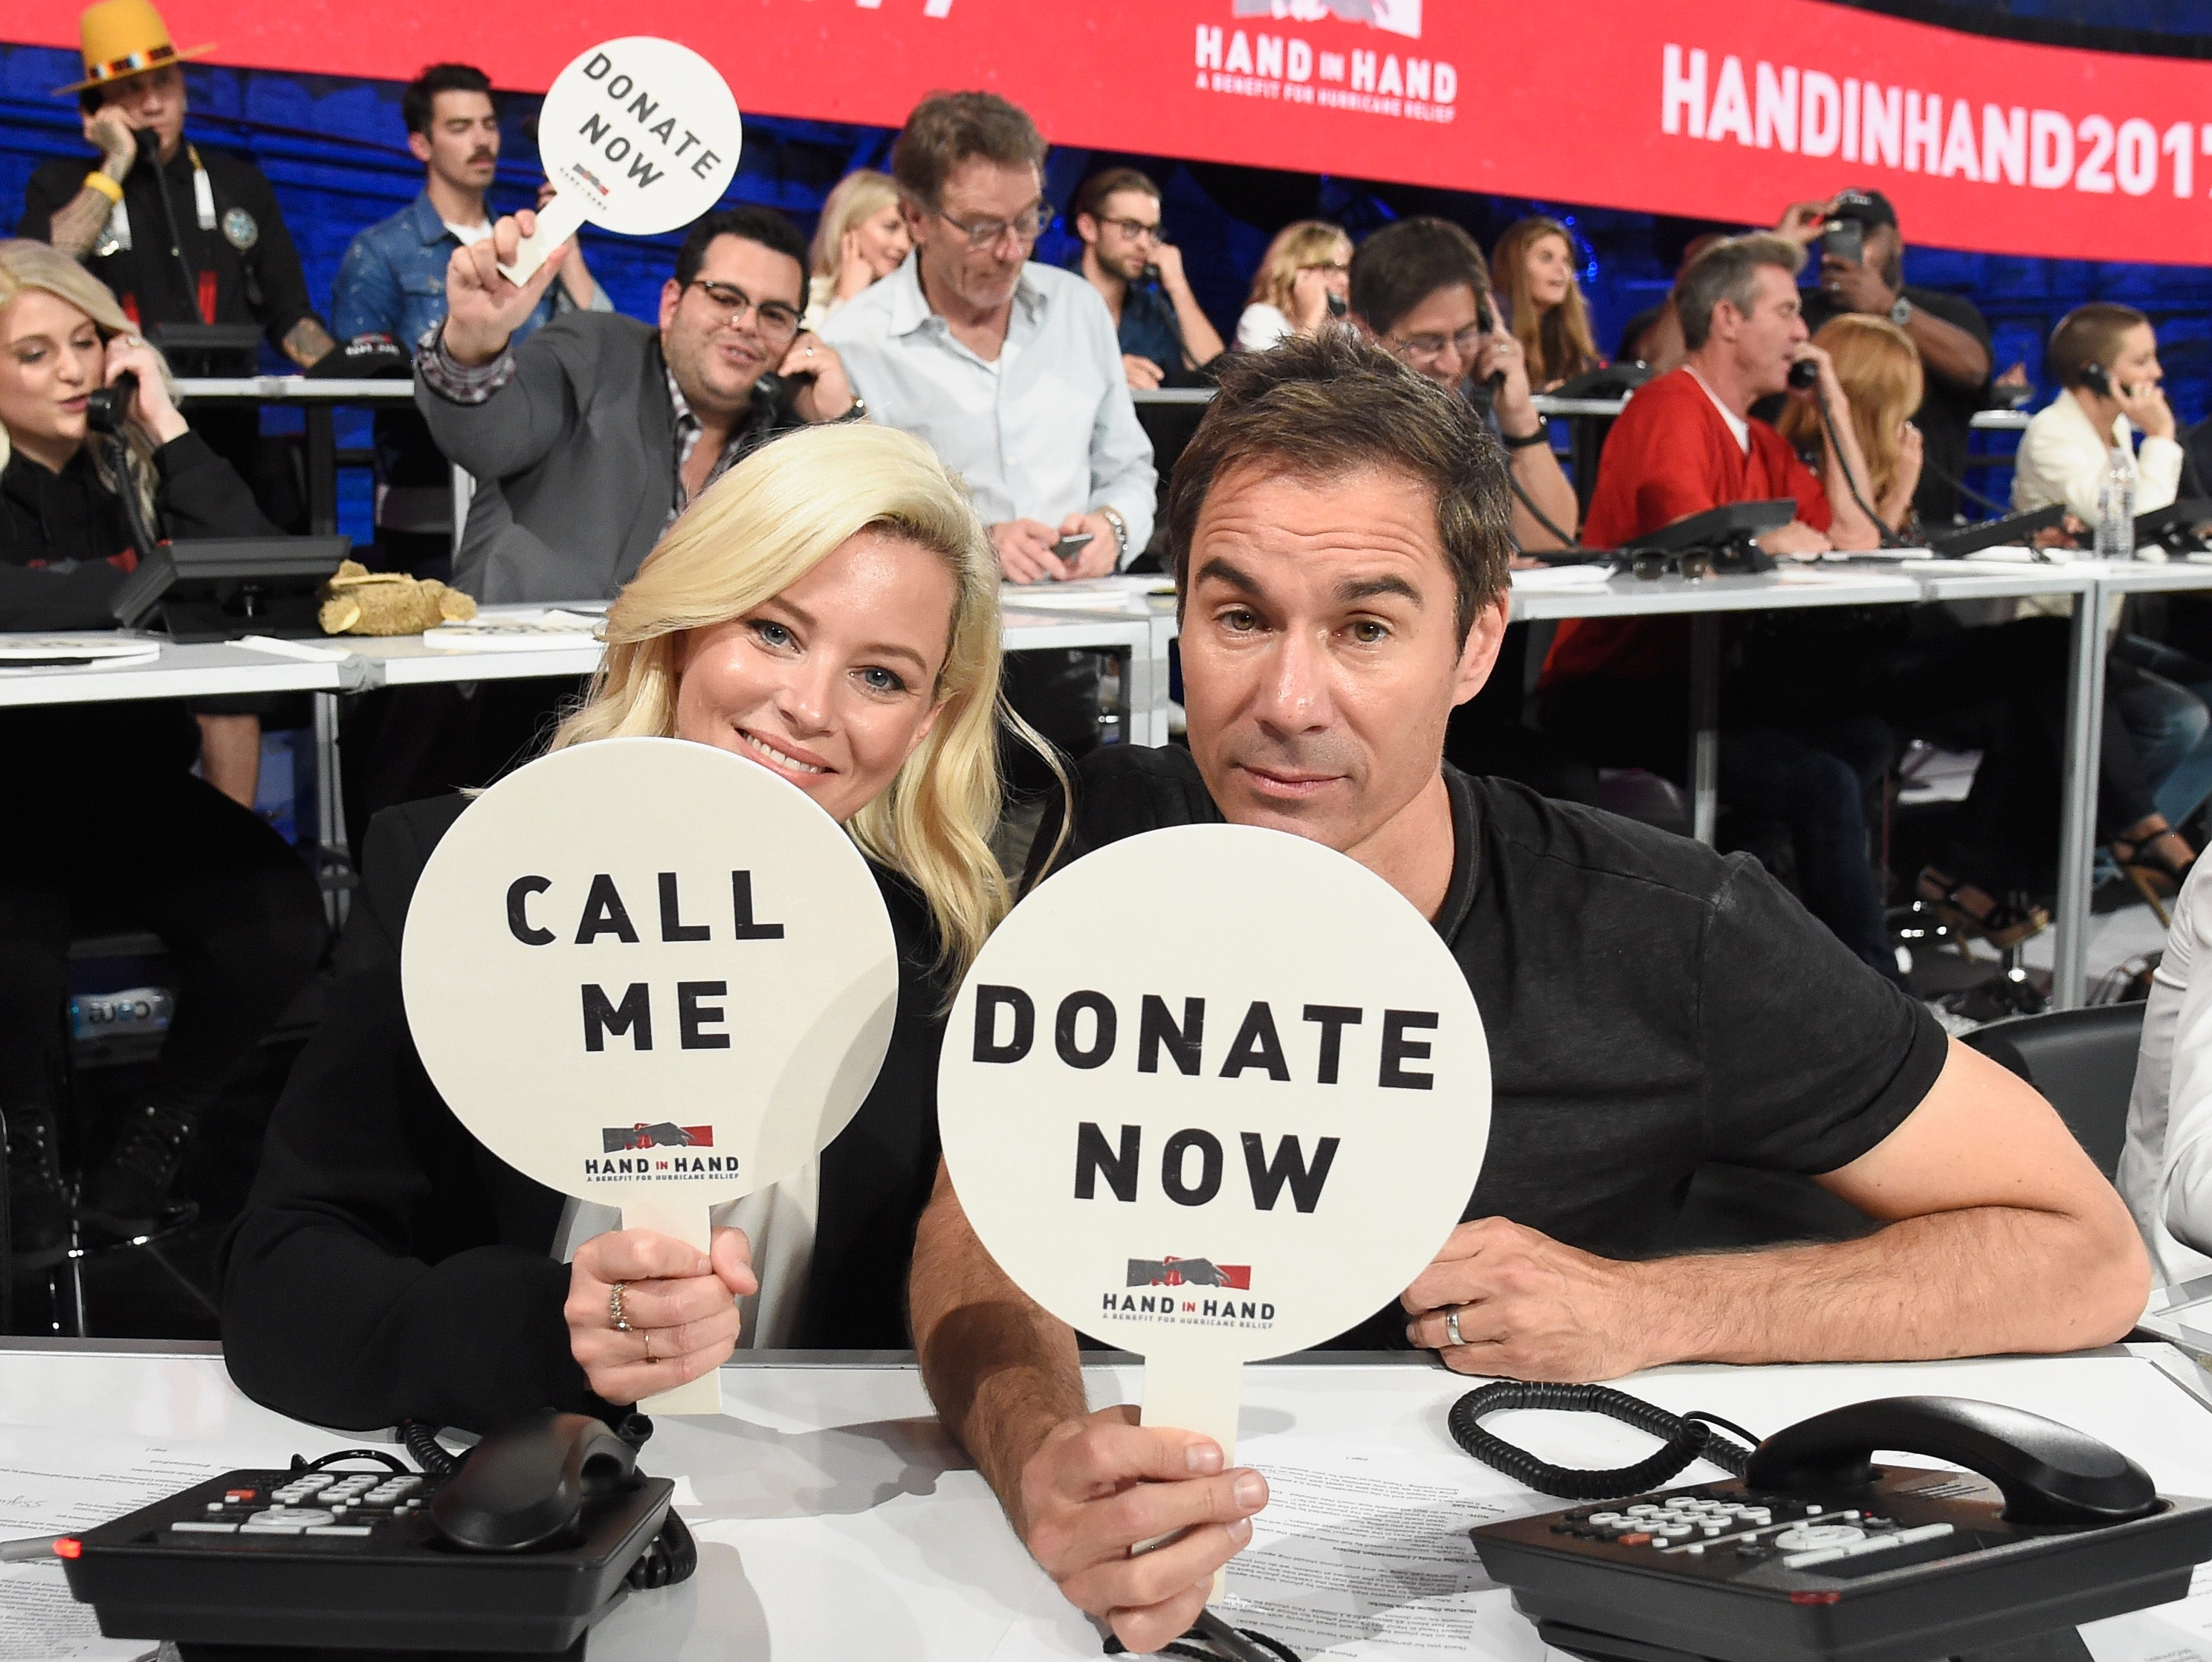 Elizabeth Banks and Eric McCormack at Hand in Hand